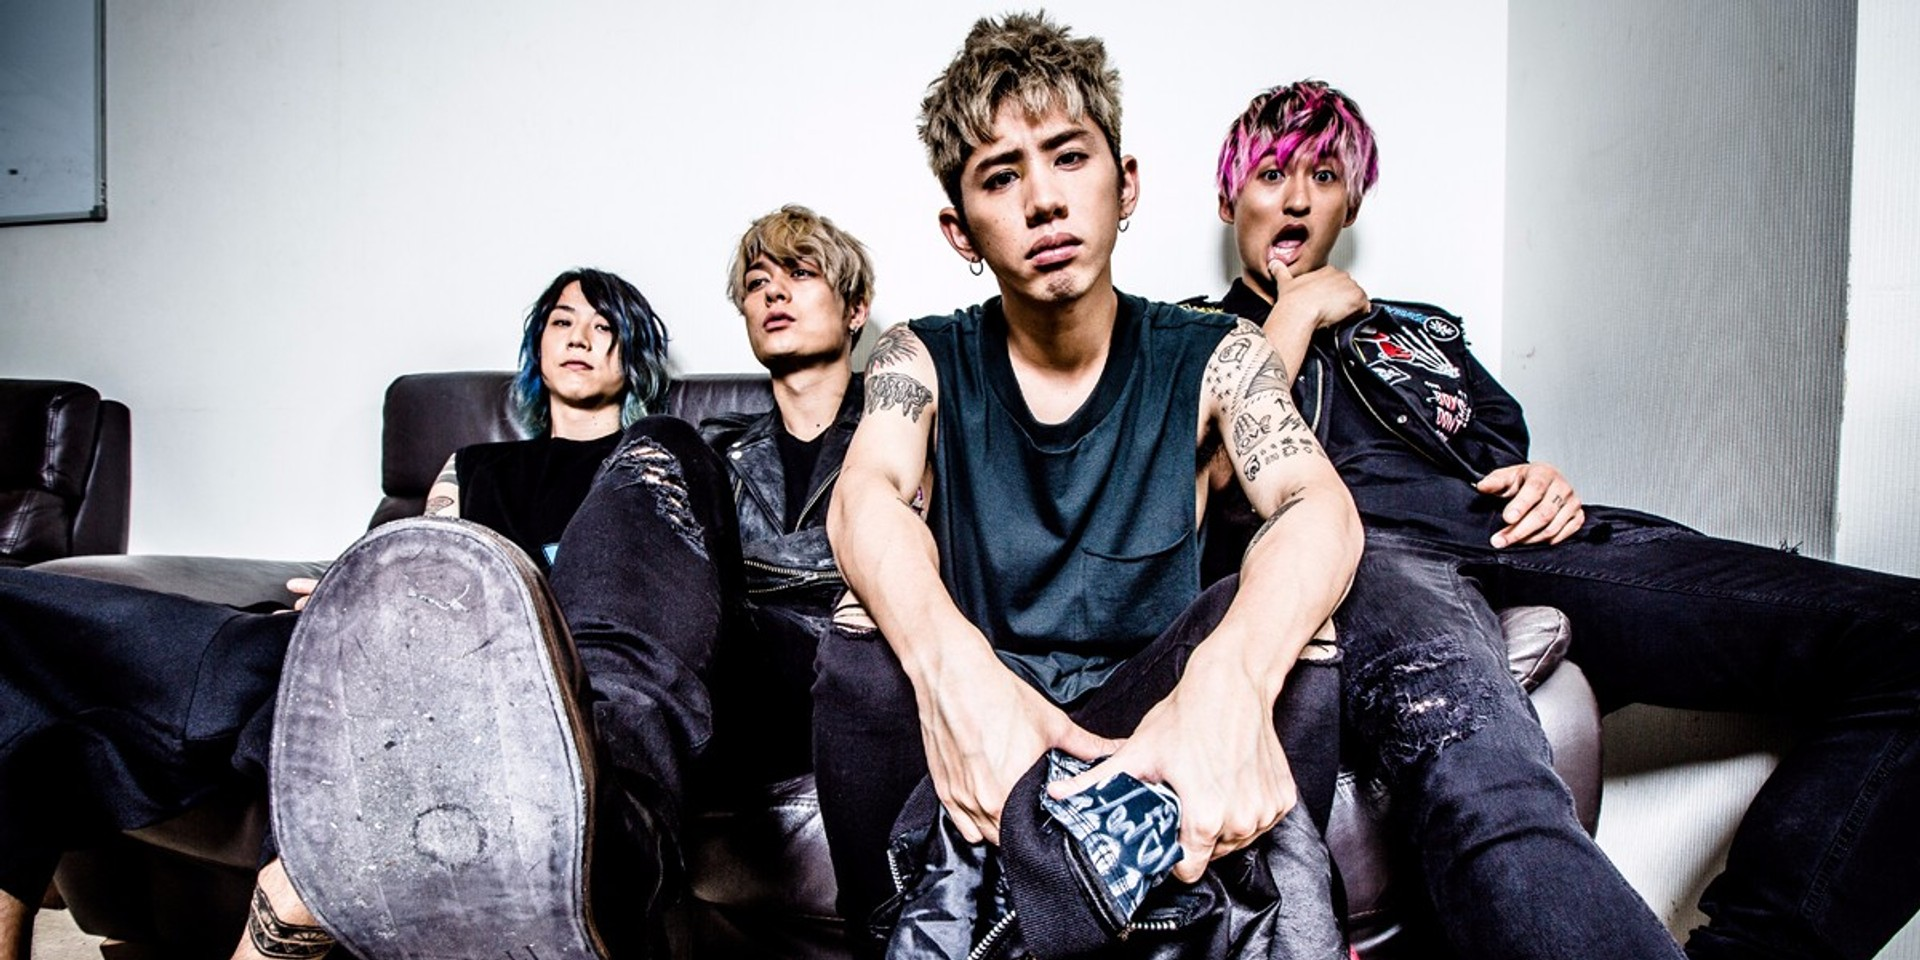 ONE OK ROCK to play their biggest show in Singapore yet, full Southeast Asia tour announced